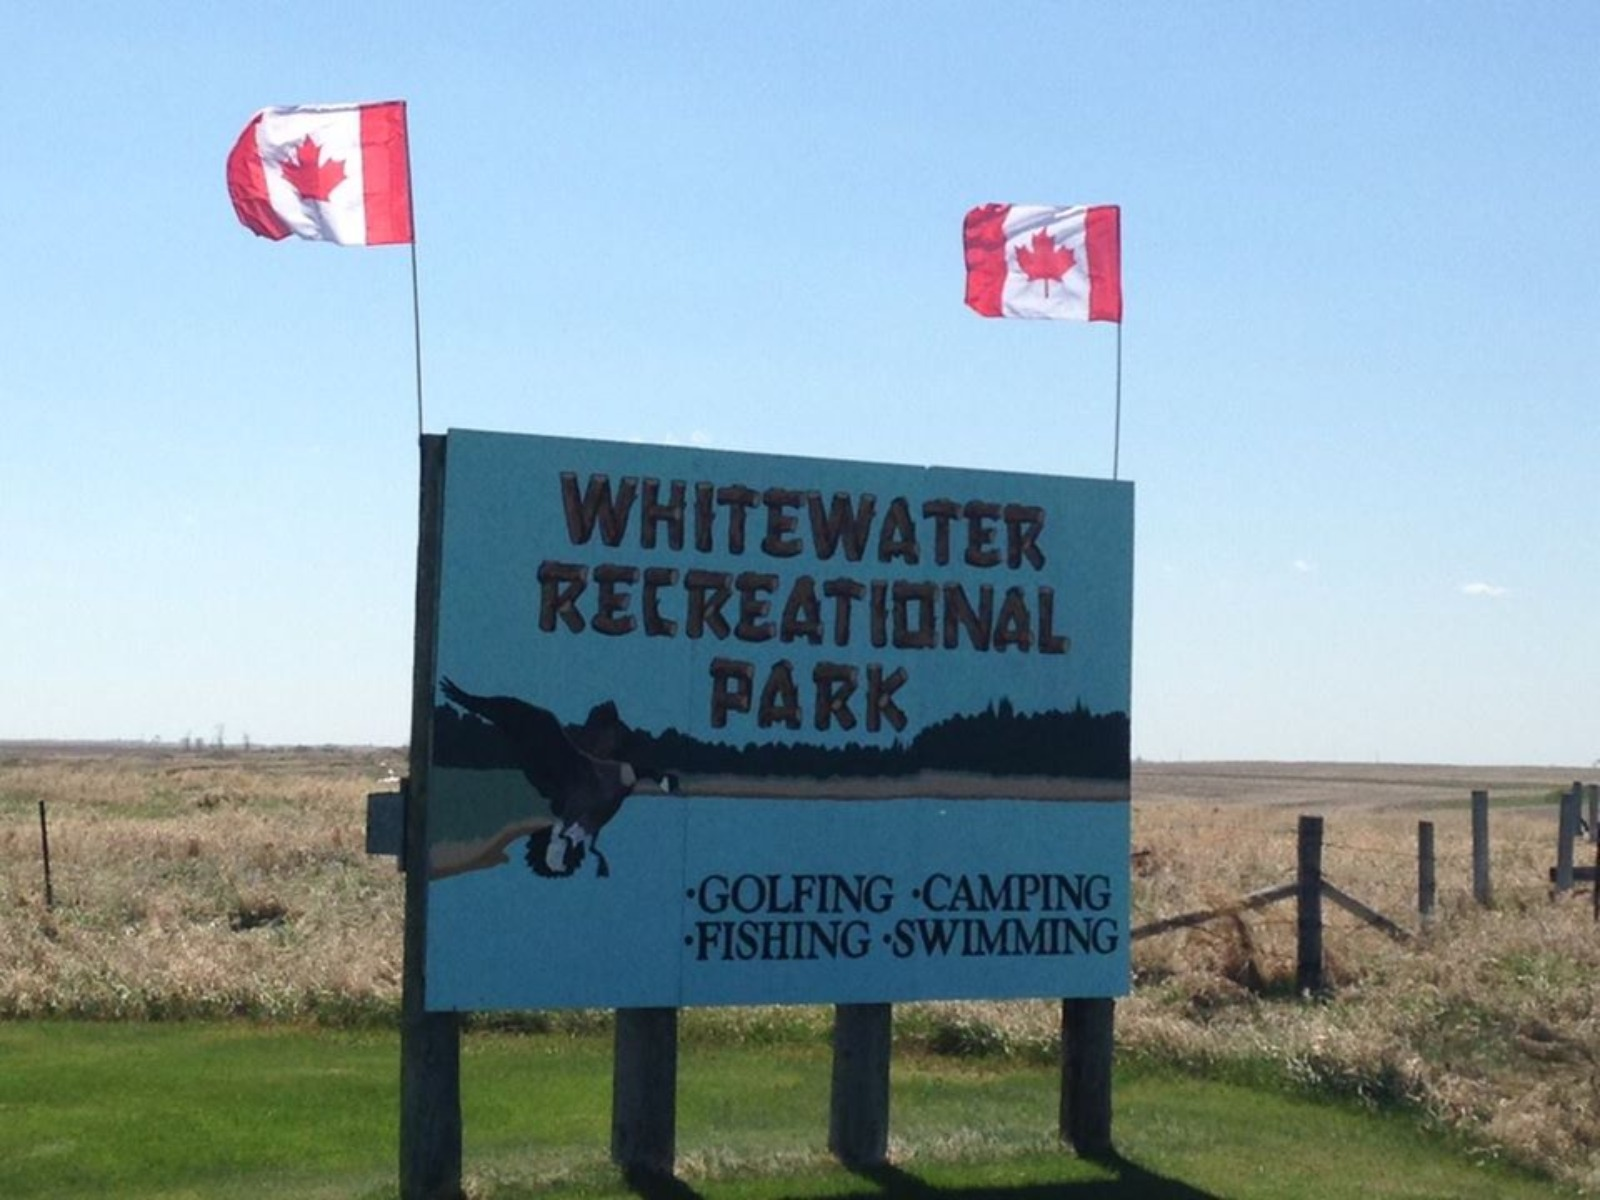 Whitewater Recreational Park